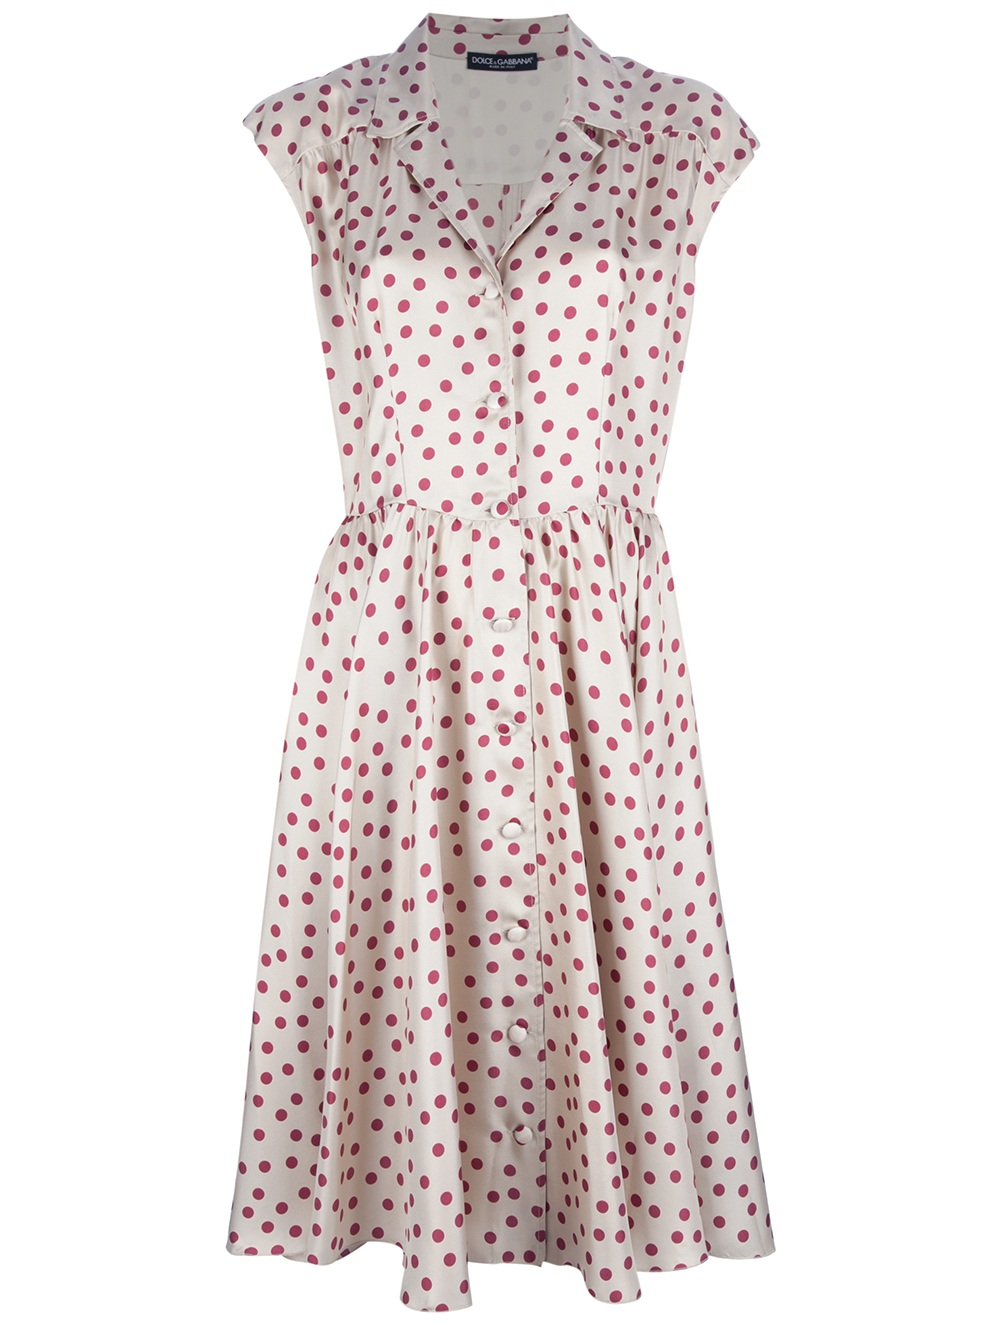 91cd7872 Gallery. Previously sold at: Farfetch · Women's Polka Dot Dresses